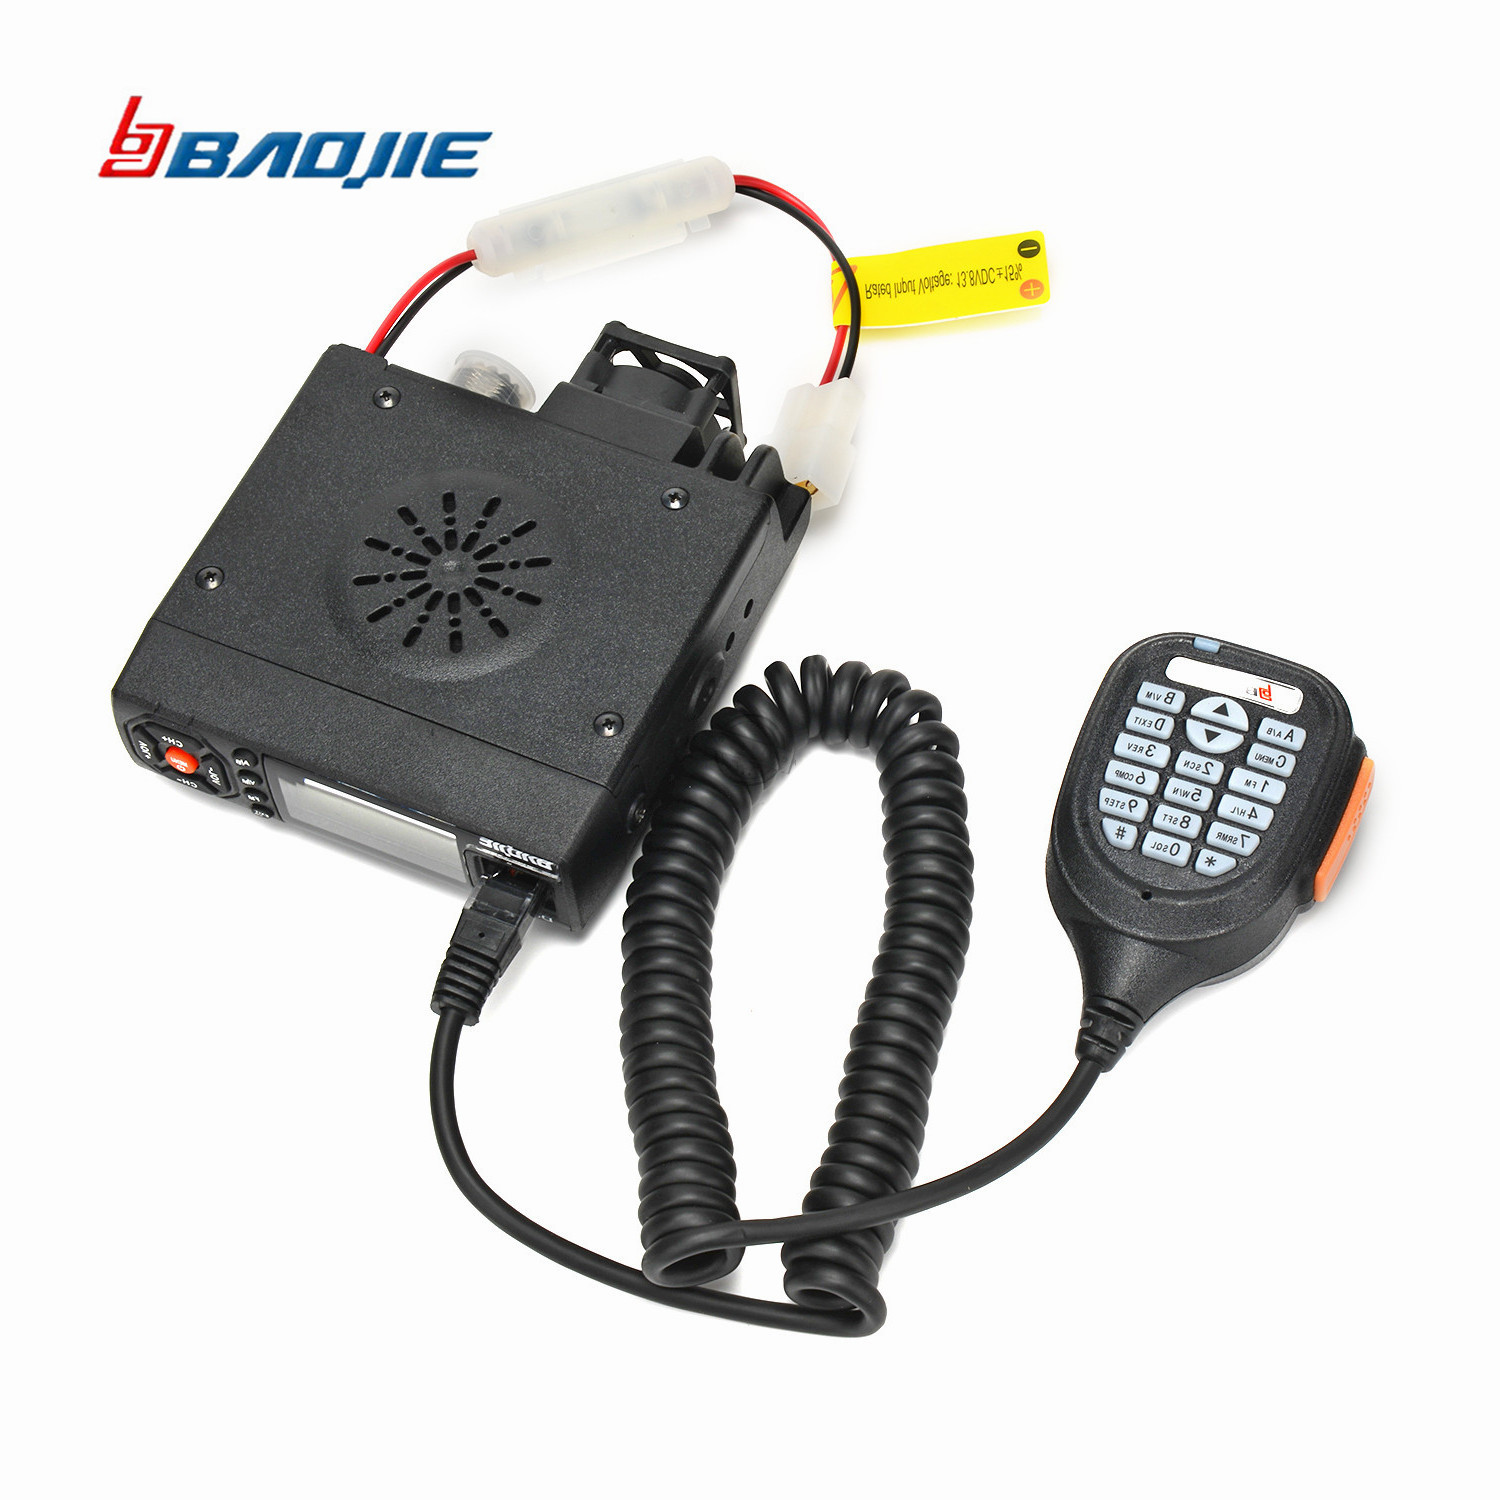 Baojie BJ-218 Long Range Mini Car Mobile Radio Transceiver 25W Dual Band VHF/UHF BJ218 Car Radio CB Radio For Truck